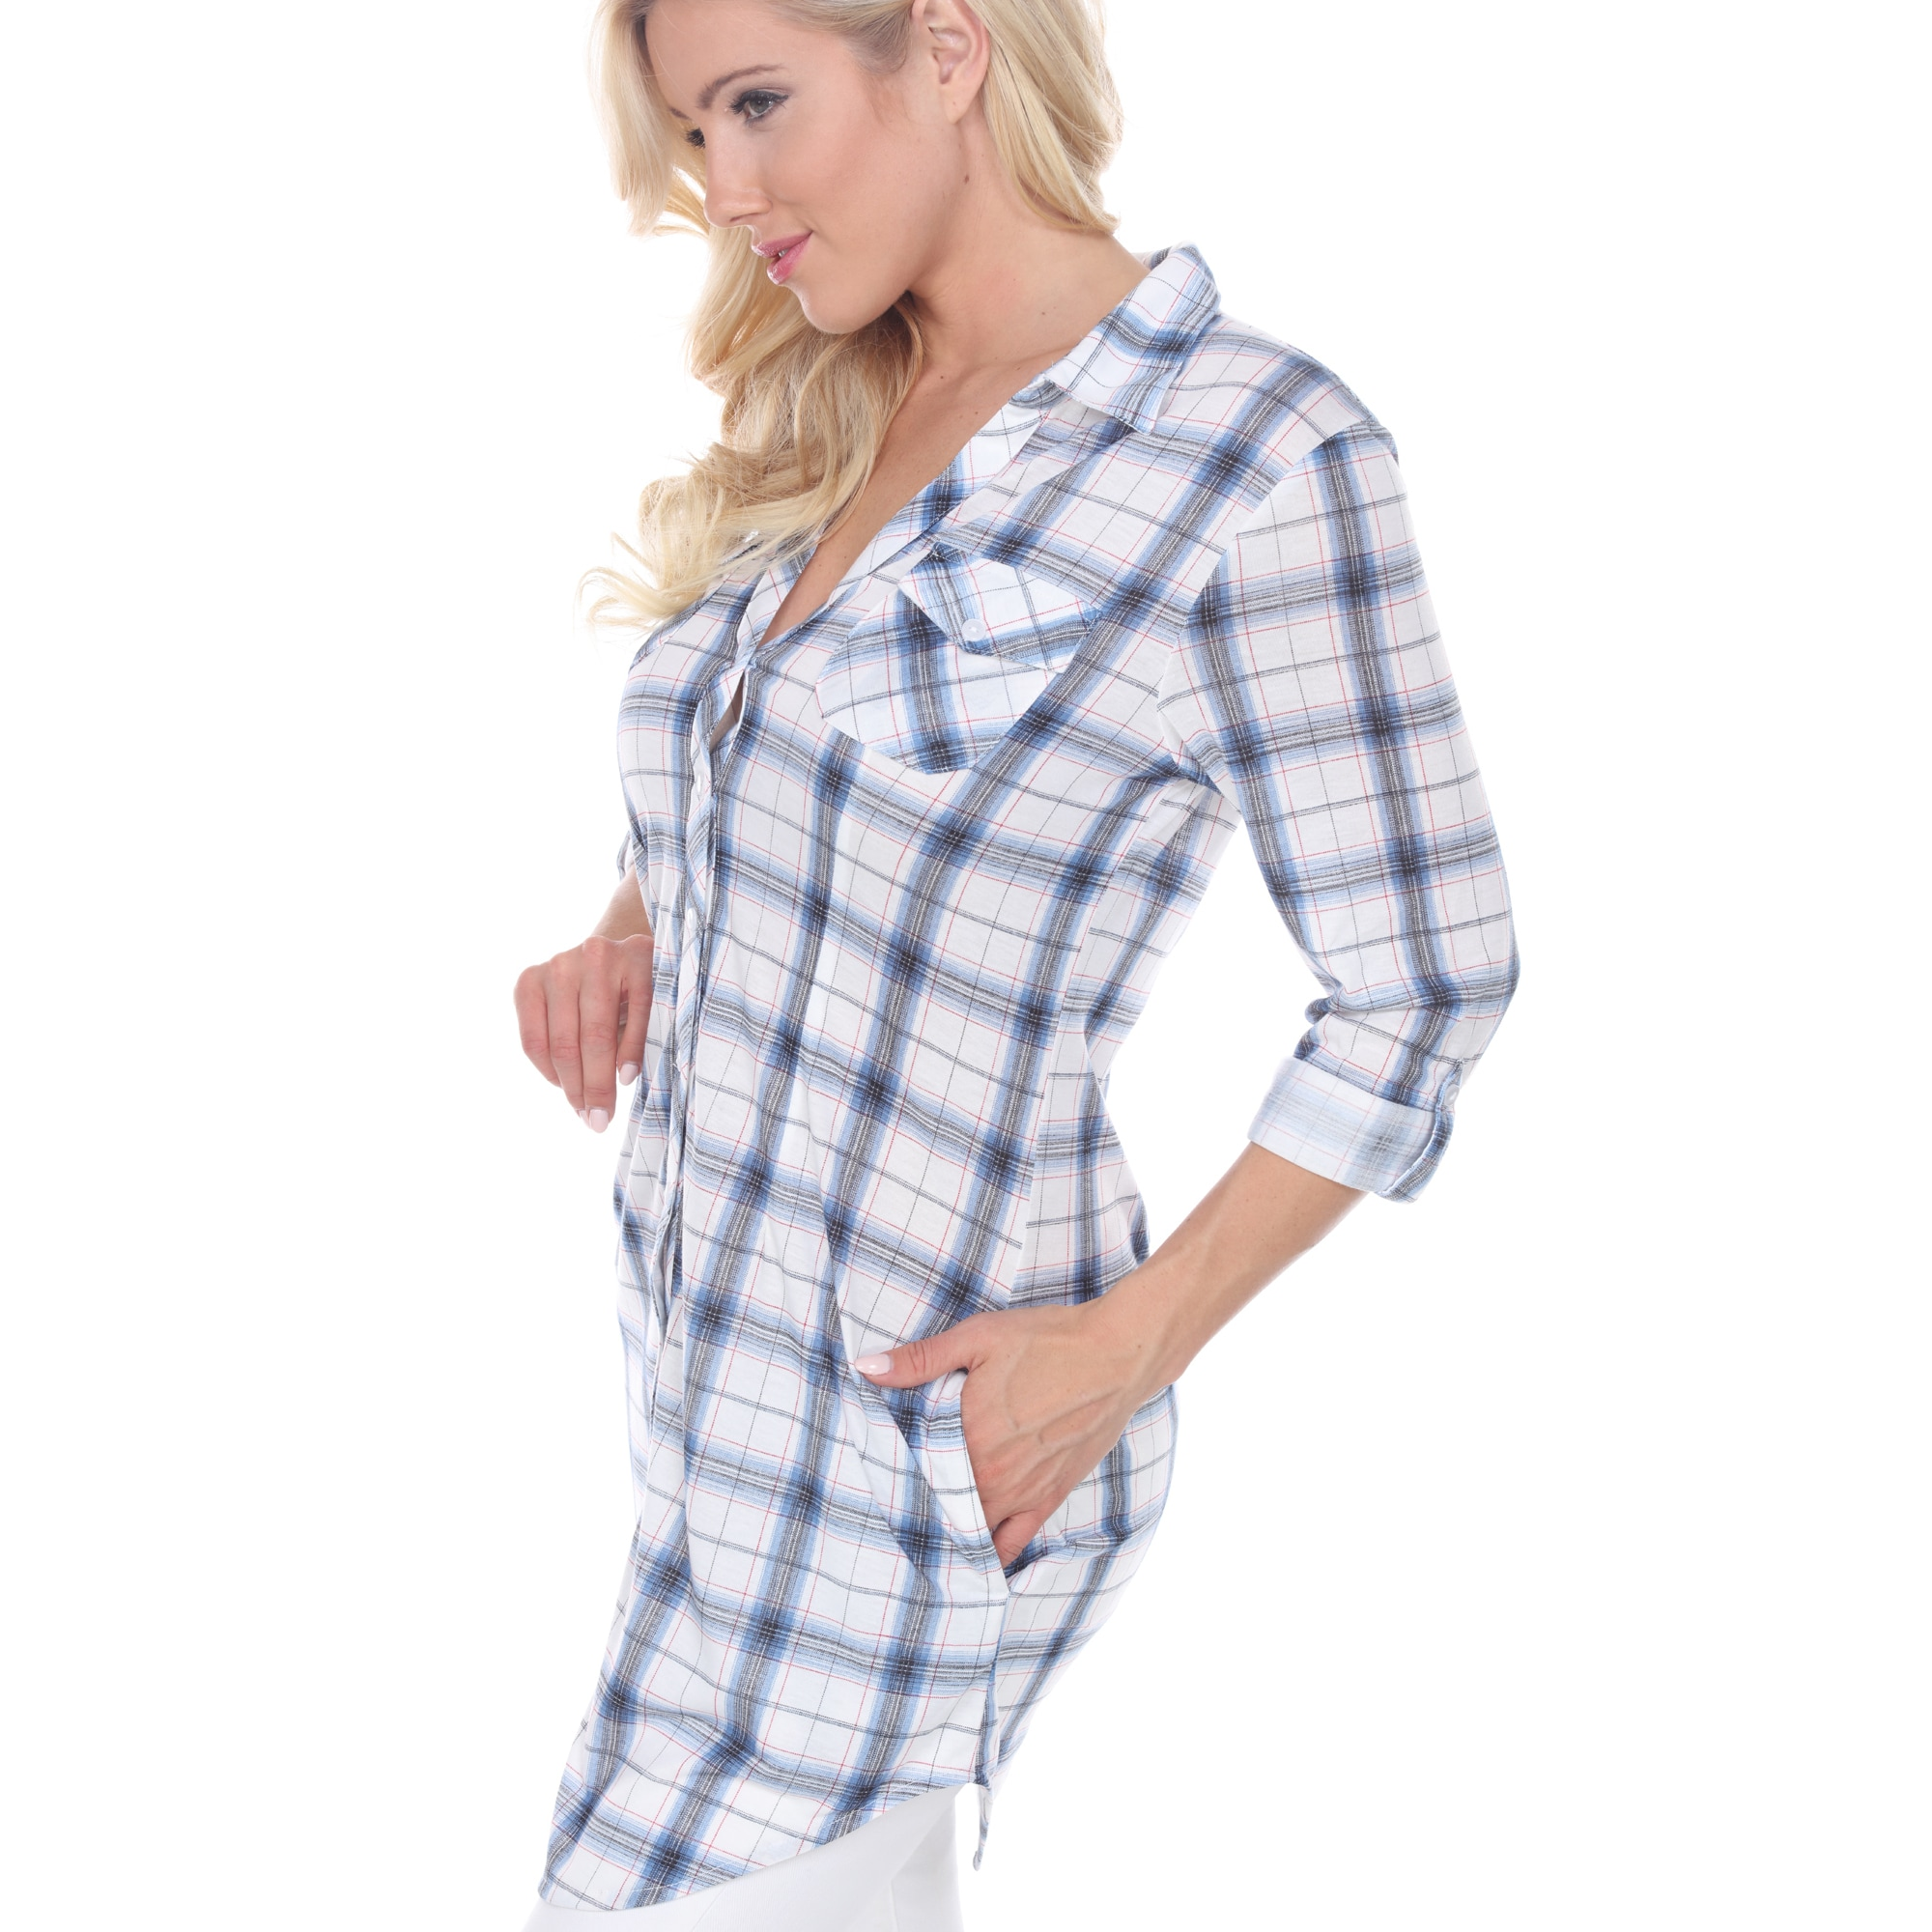 Red flannel nightgown  White Mark Piper Plaid Tunic RedBlack  L Womenus Size Large